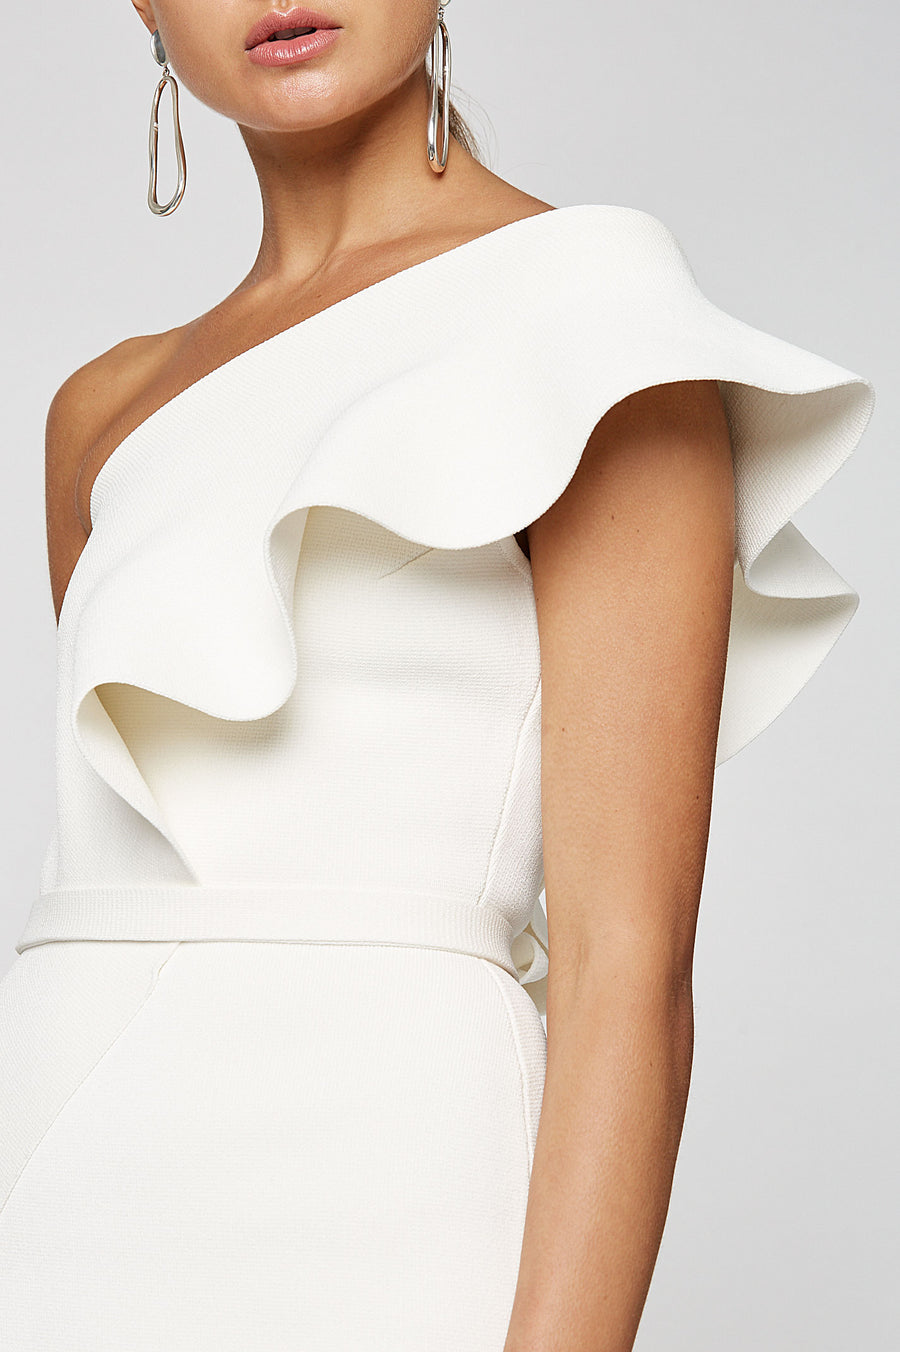 Crepe Knit Ruffle Dress, one shoulder dress, fitted throughout, ruffle feature from shoulder through opposite hip, falls just below knee, skirt has center back slit, Separate belt in same fabric included, Color Cream